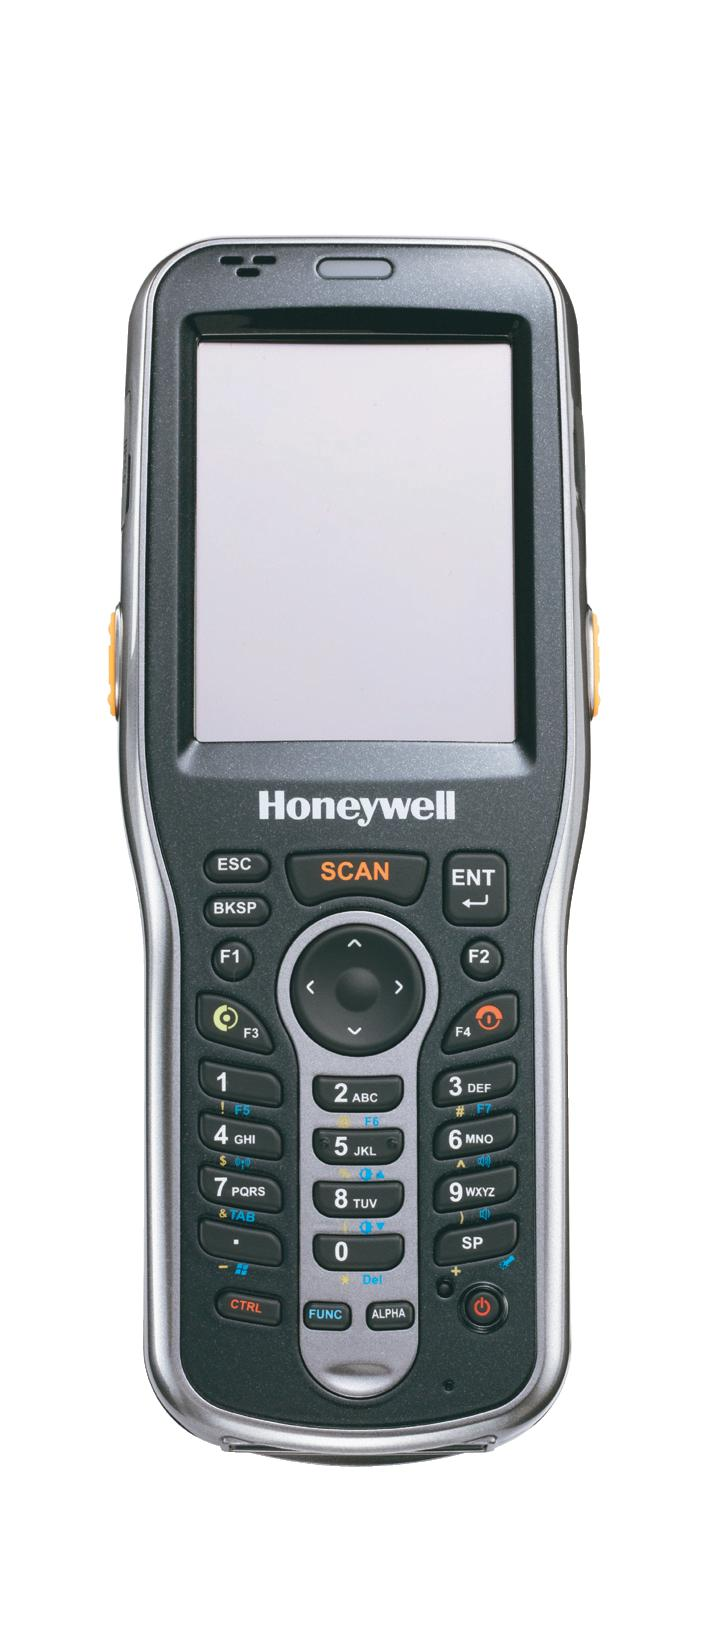 Dolphin 6100 Mobile Computer